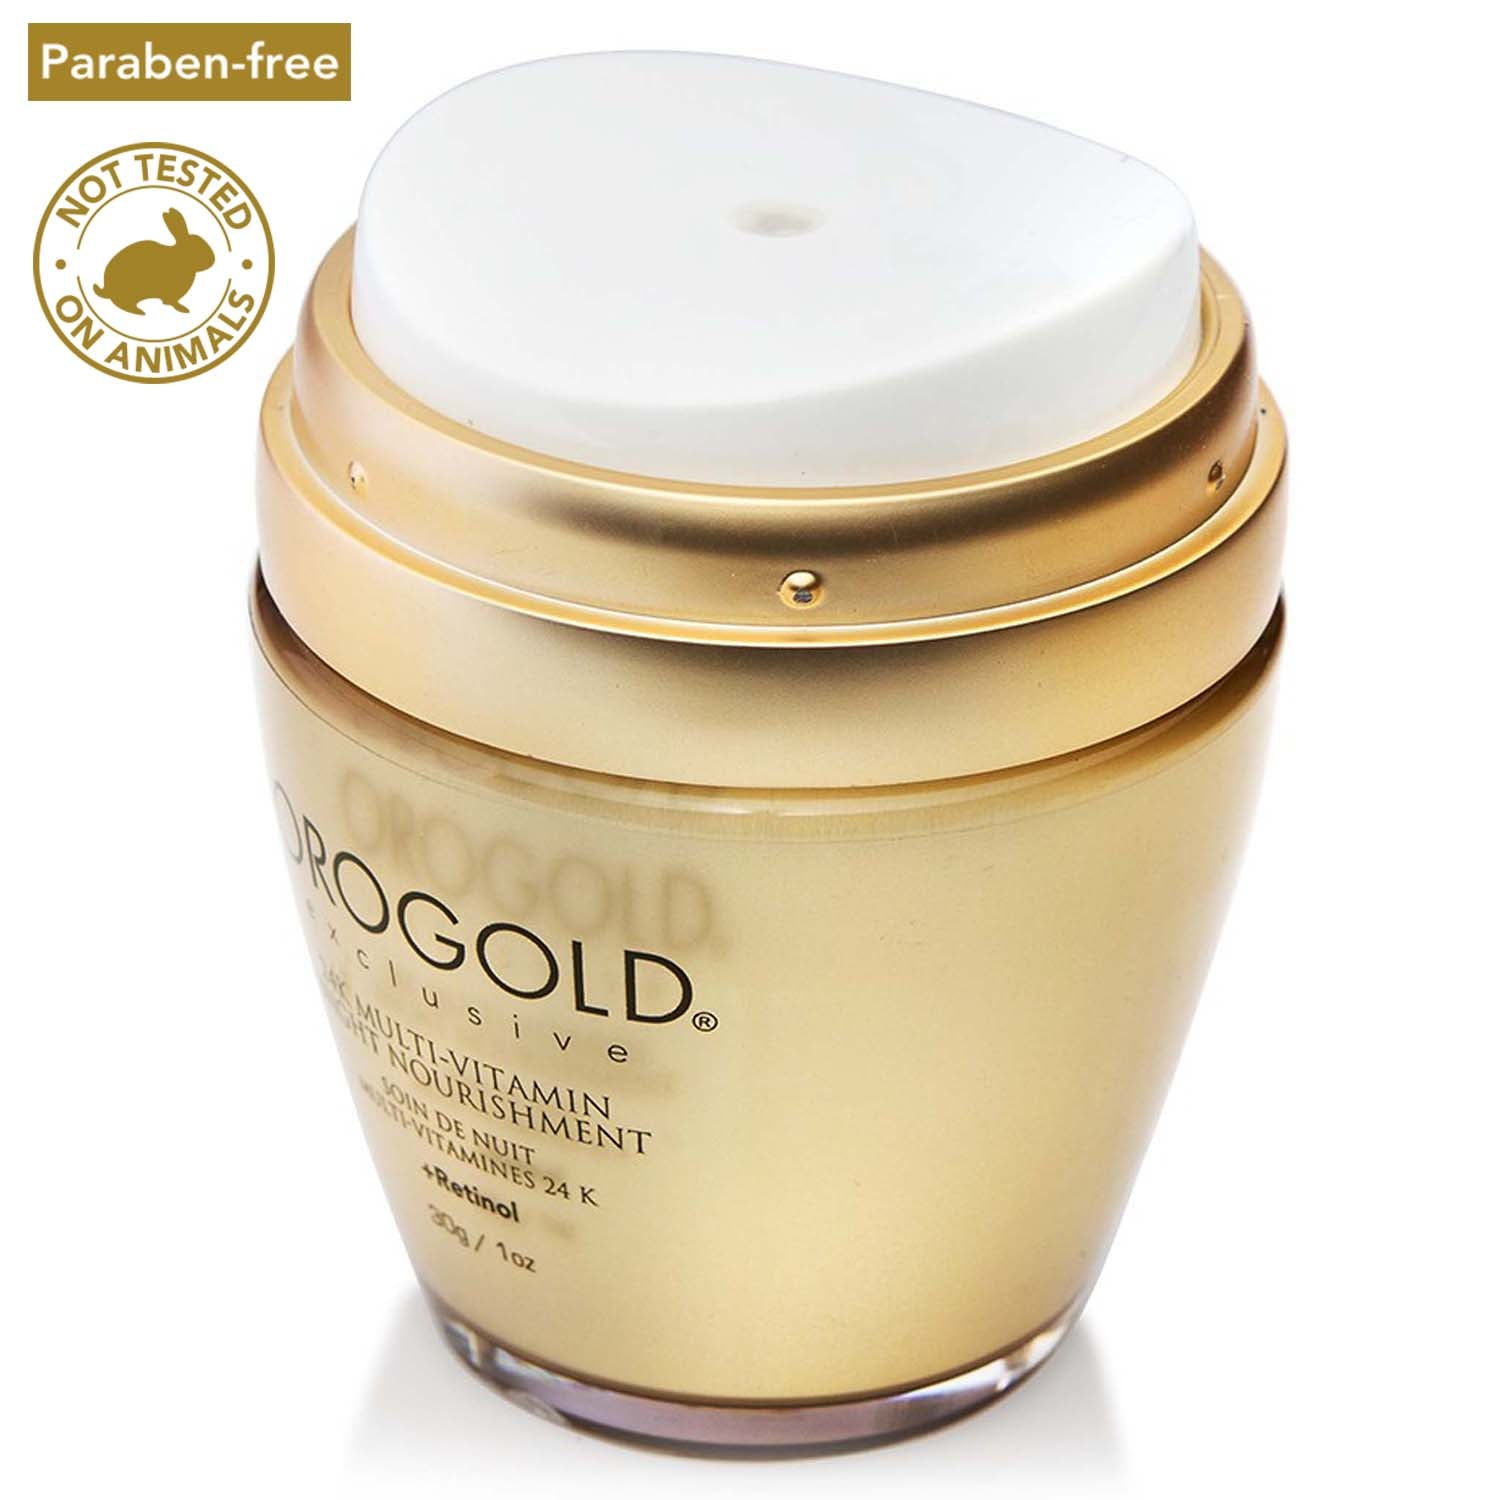 orogold 24k multi-vitamin night nourishment + retinol